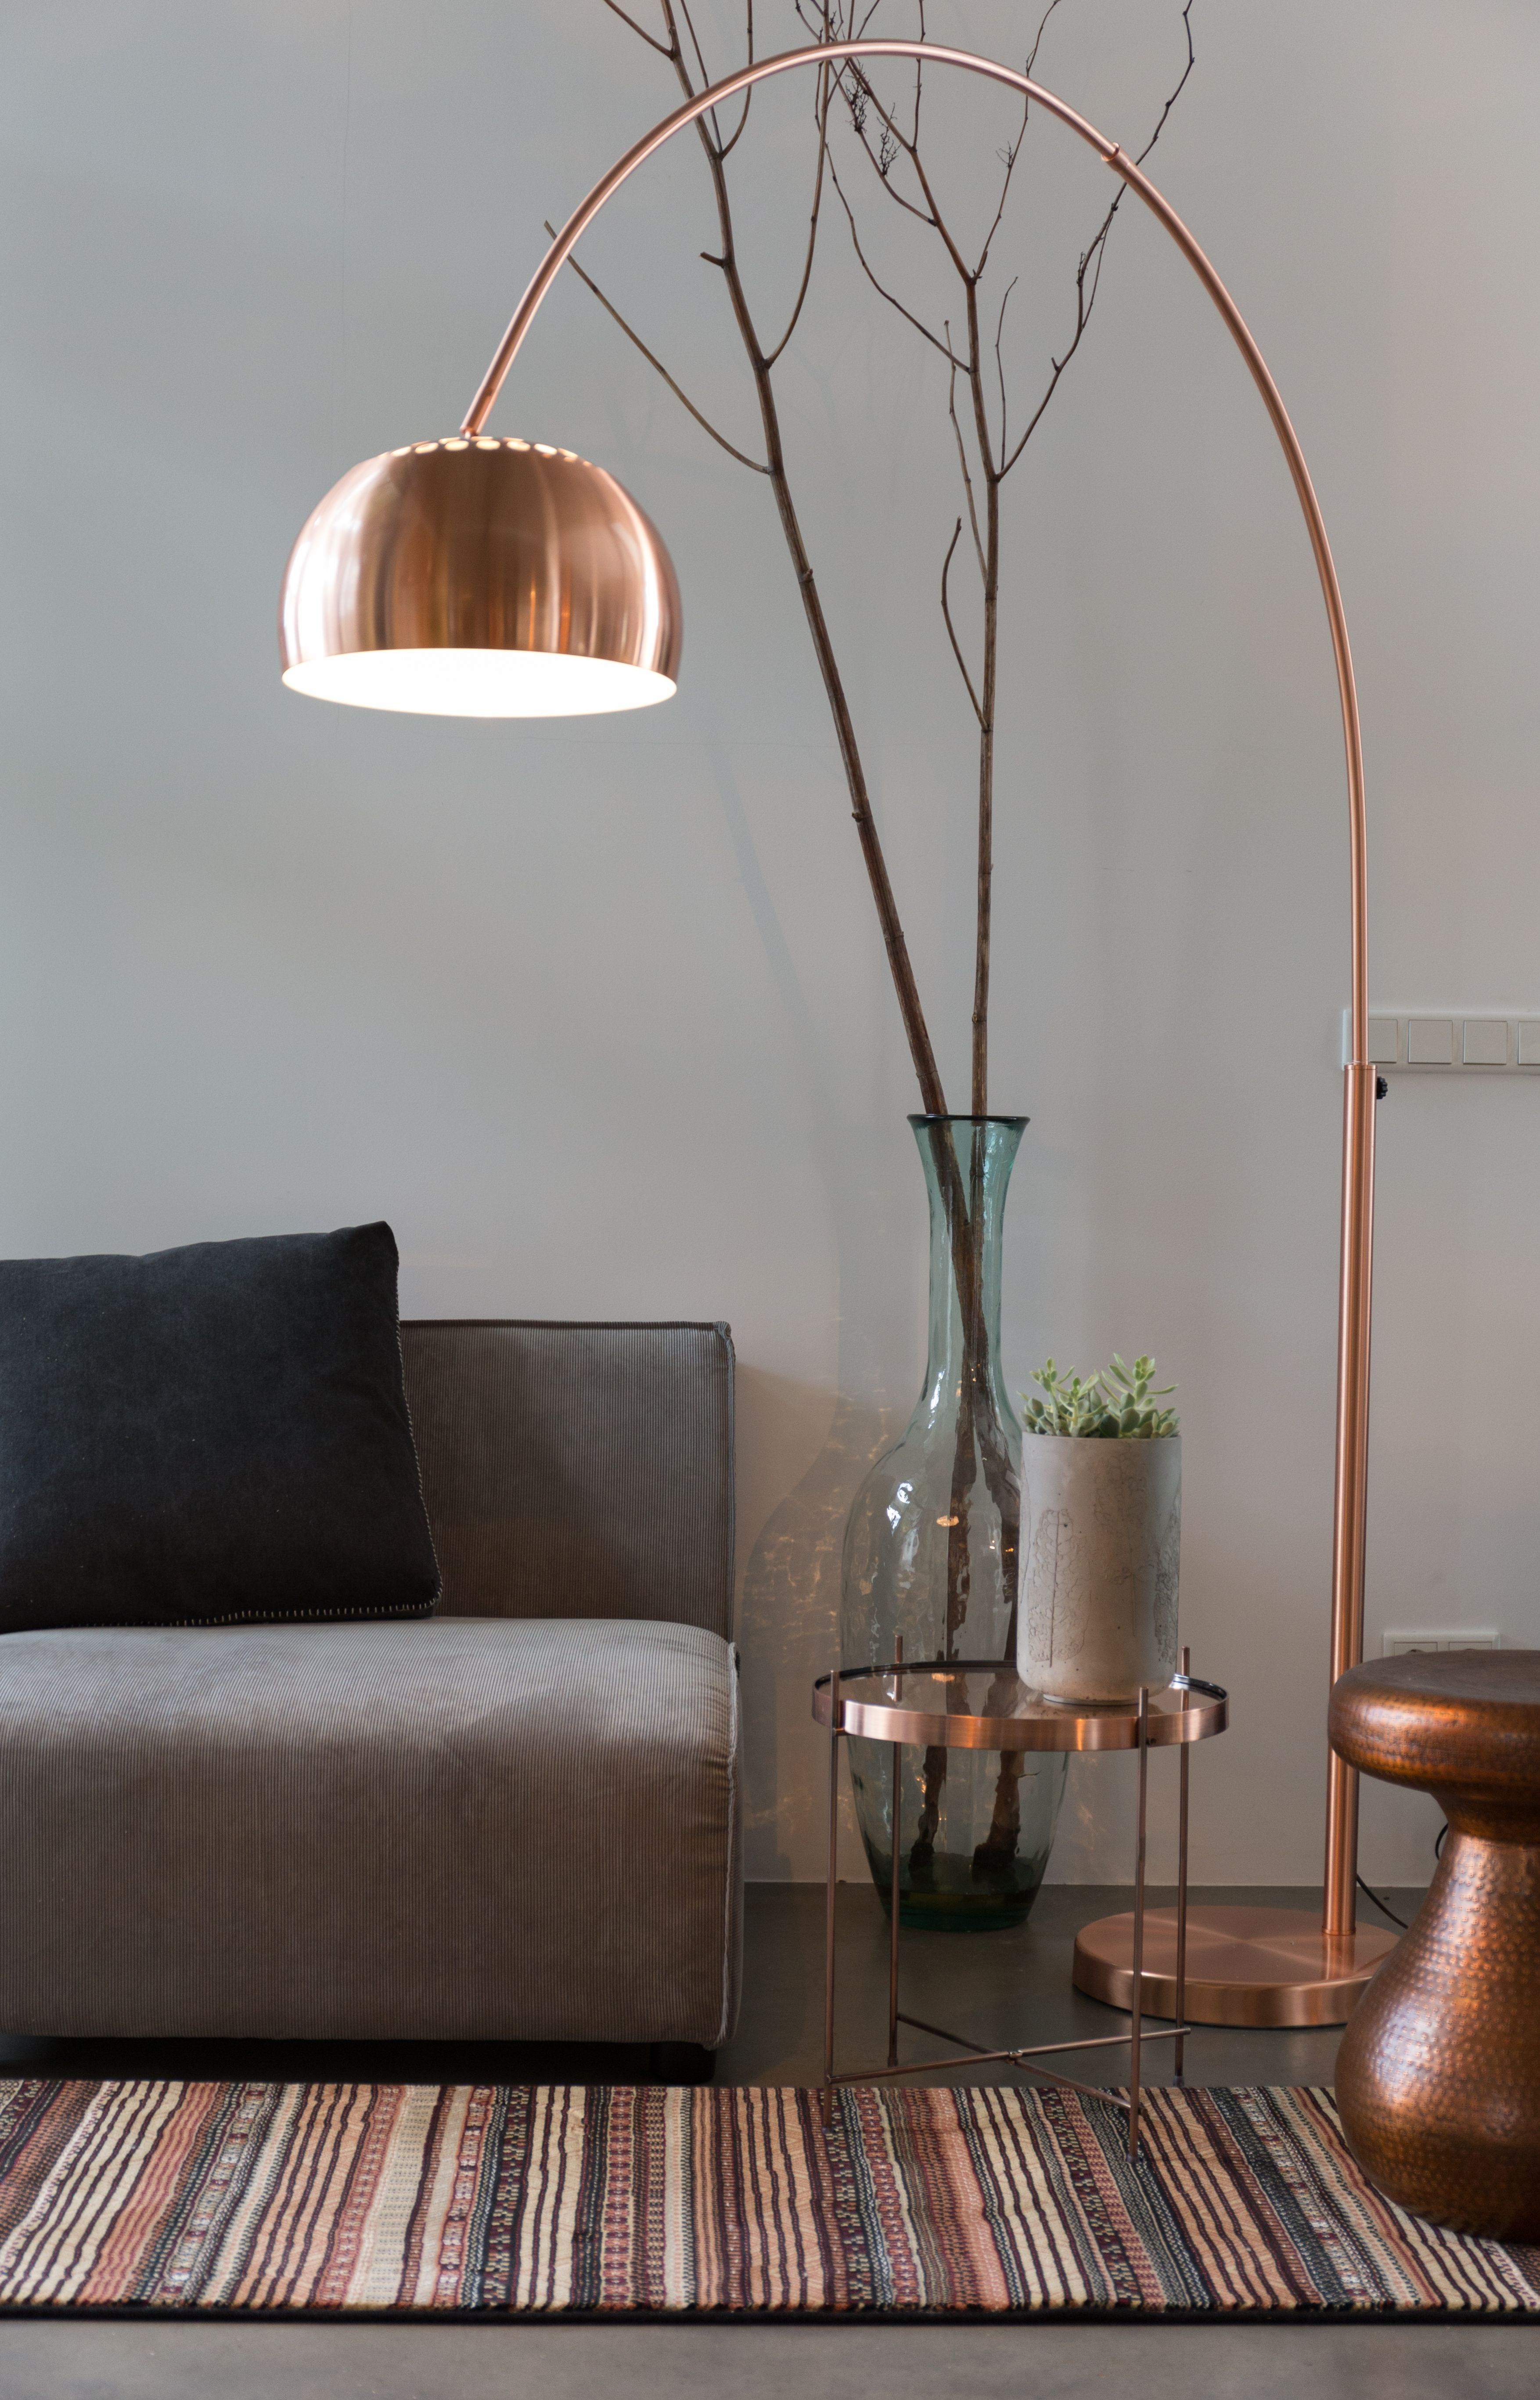 23 Ways to Decorate With Copper | Living rooms, Metals and Interiors